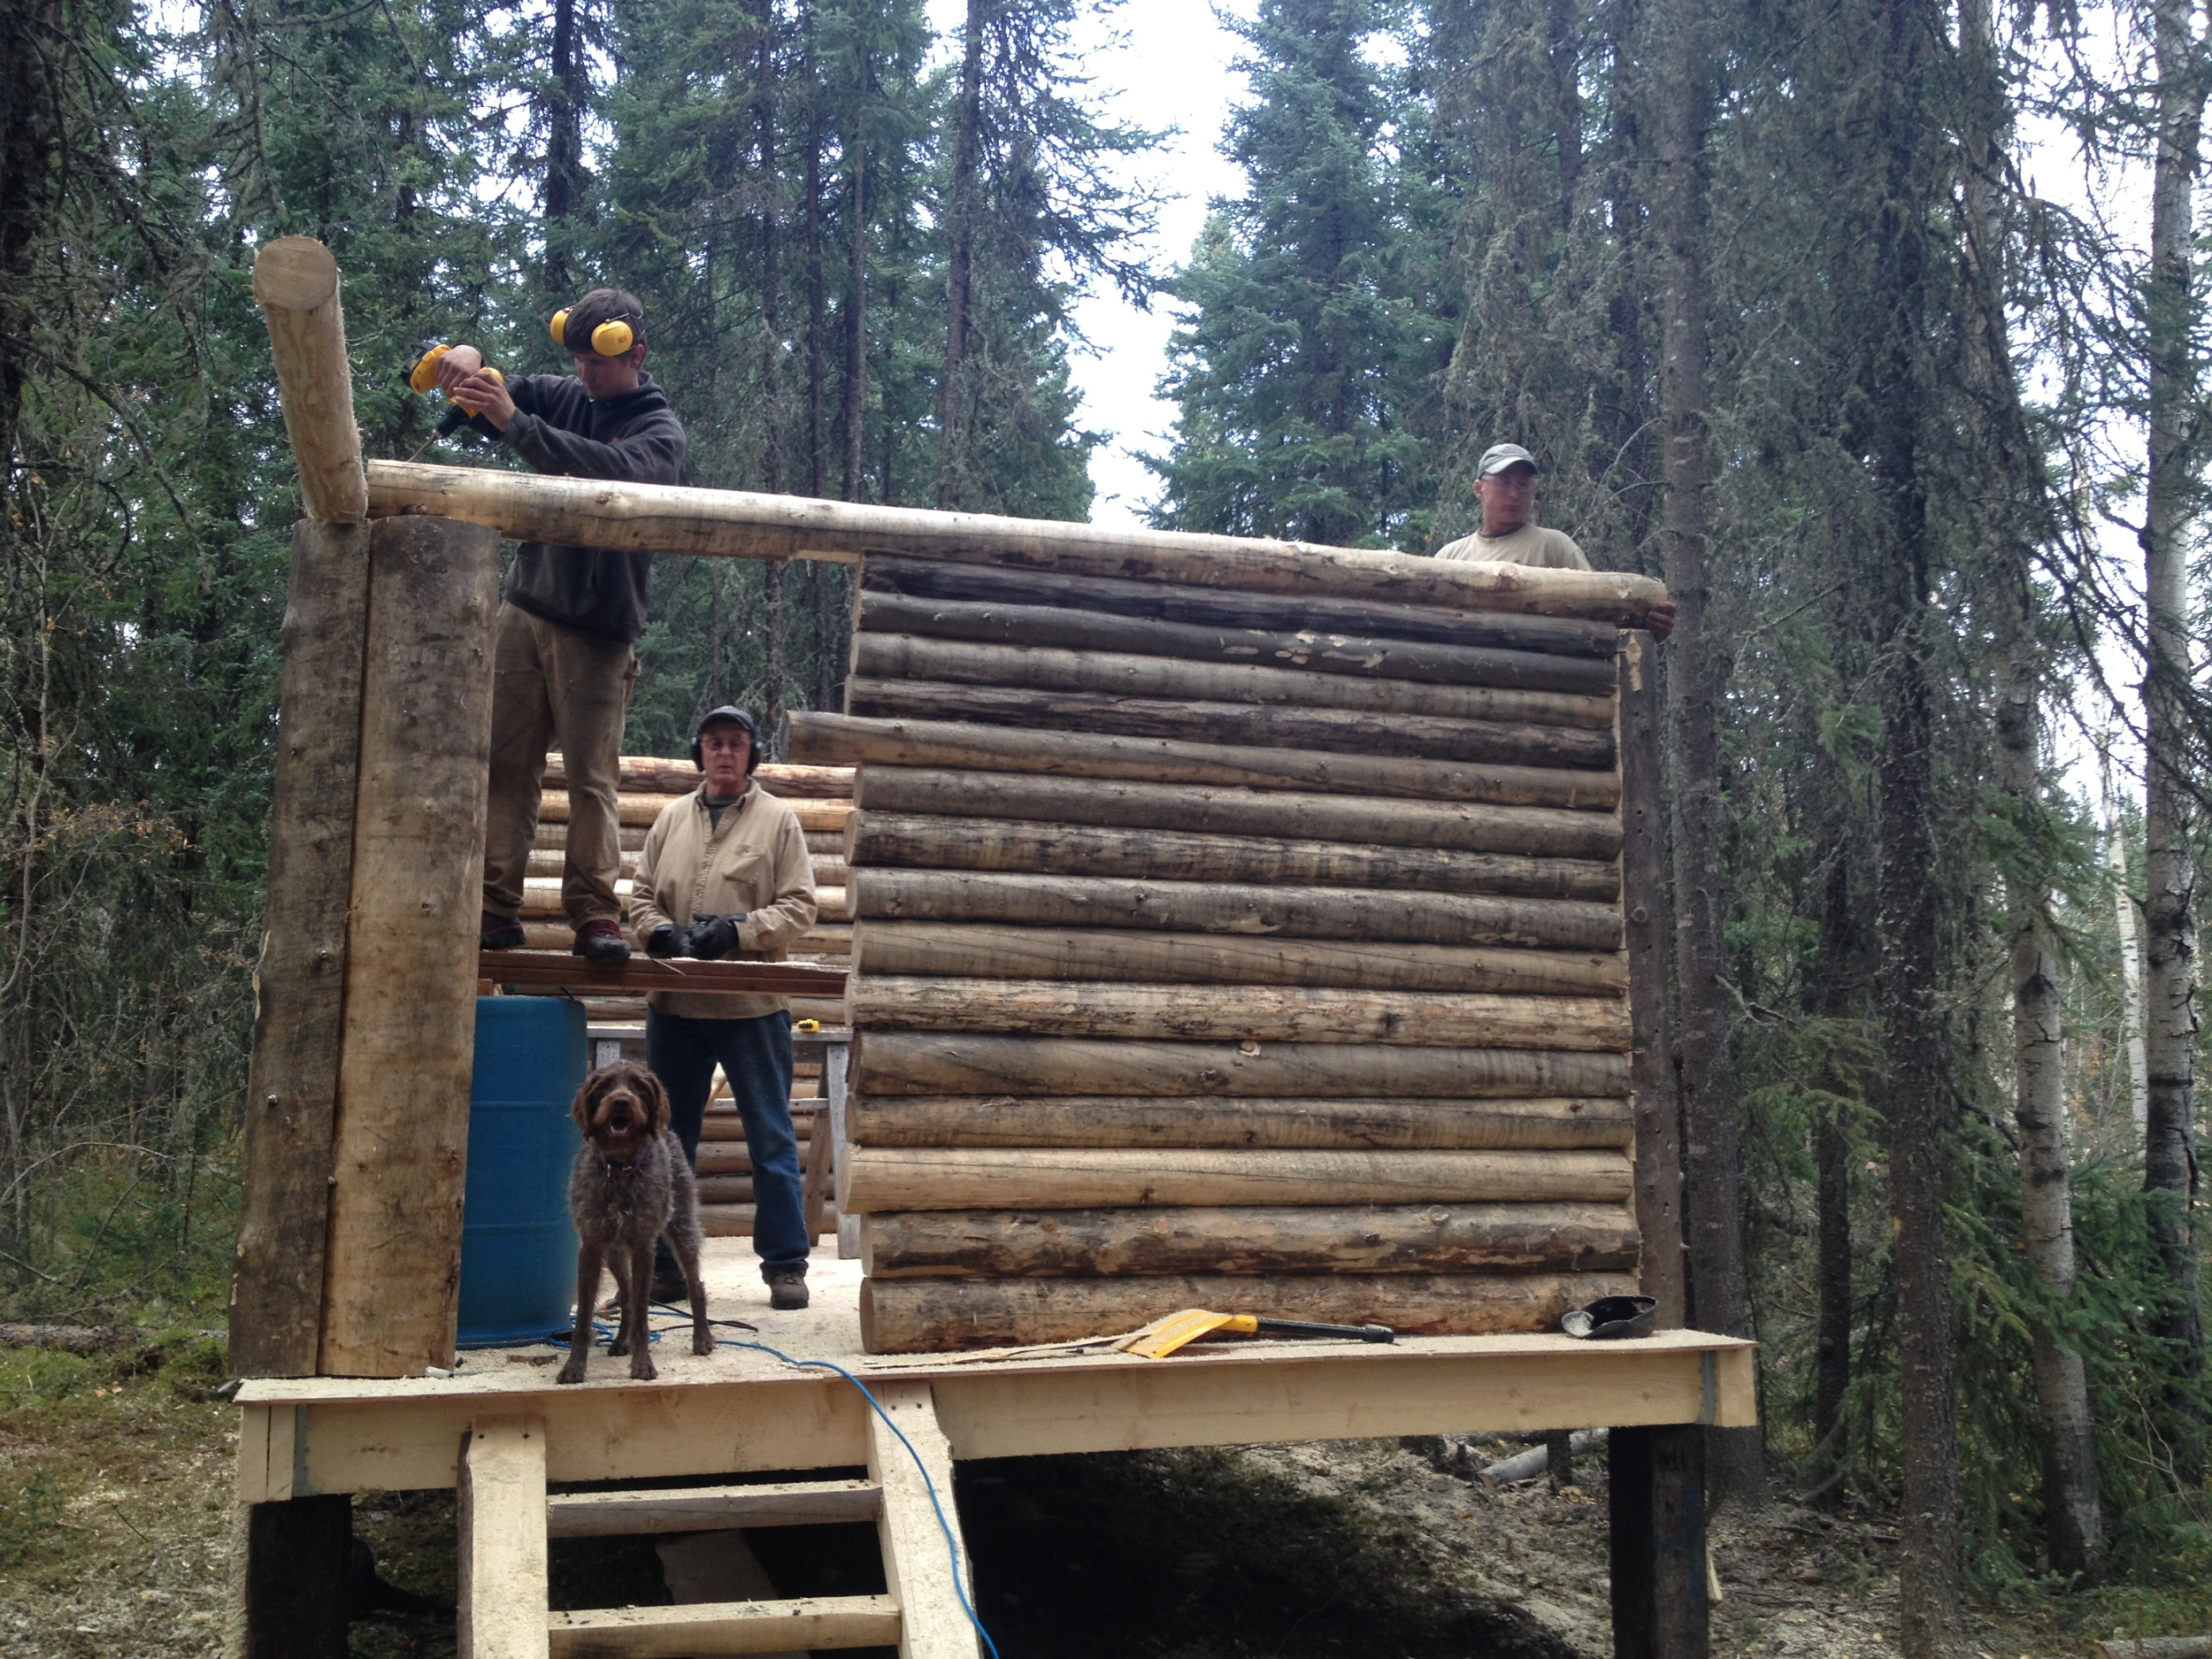 Derek, Rick, and Riley working on the cabin.